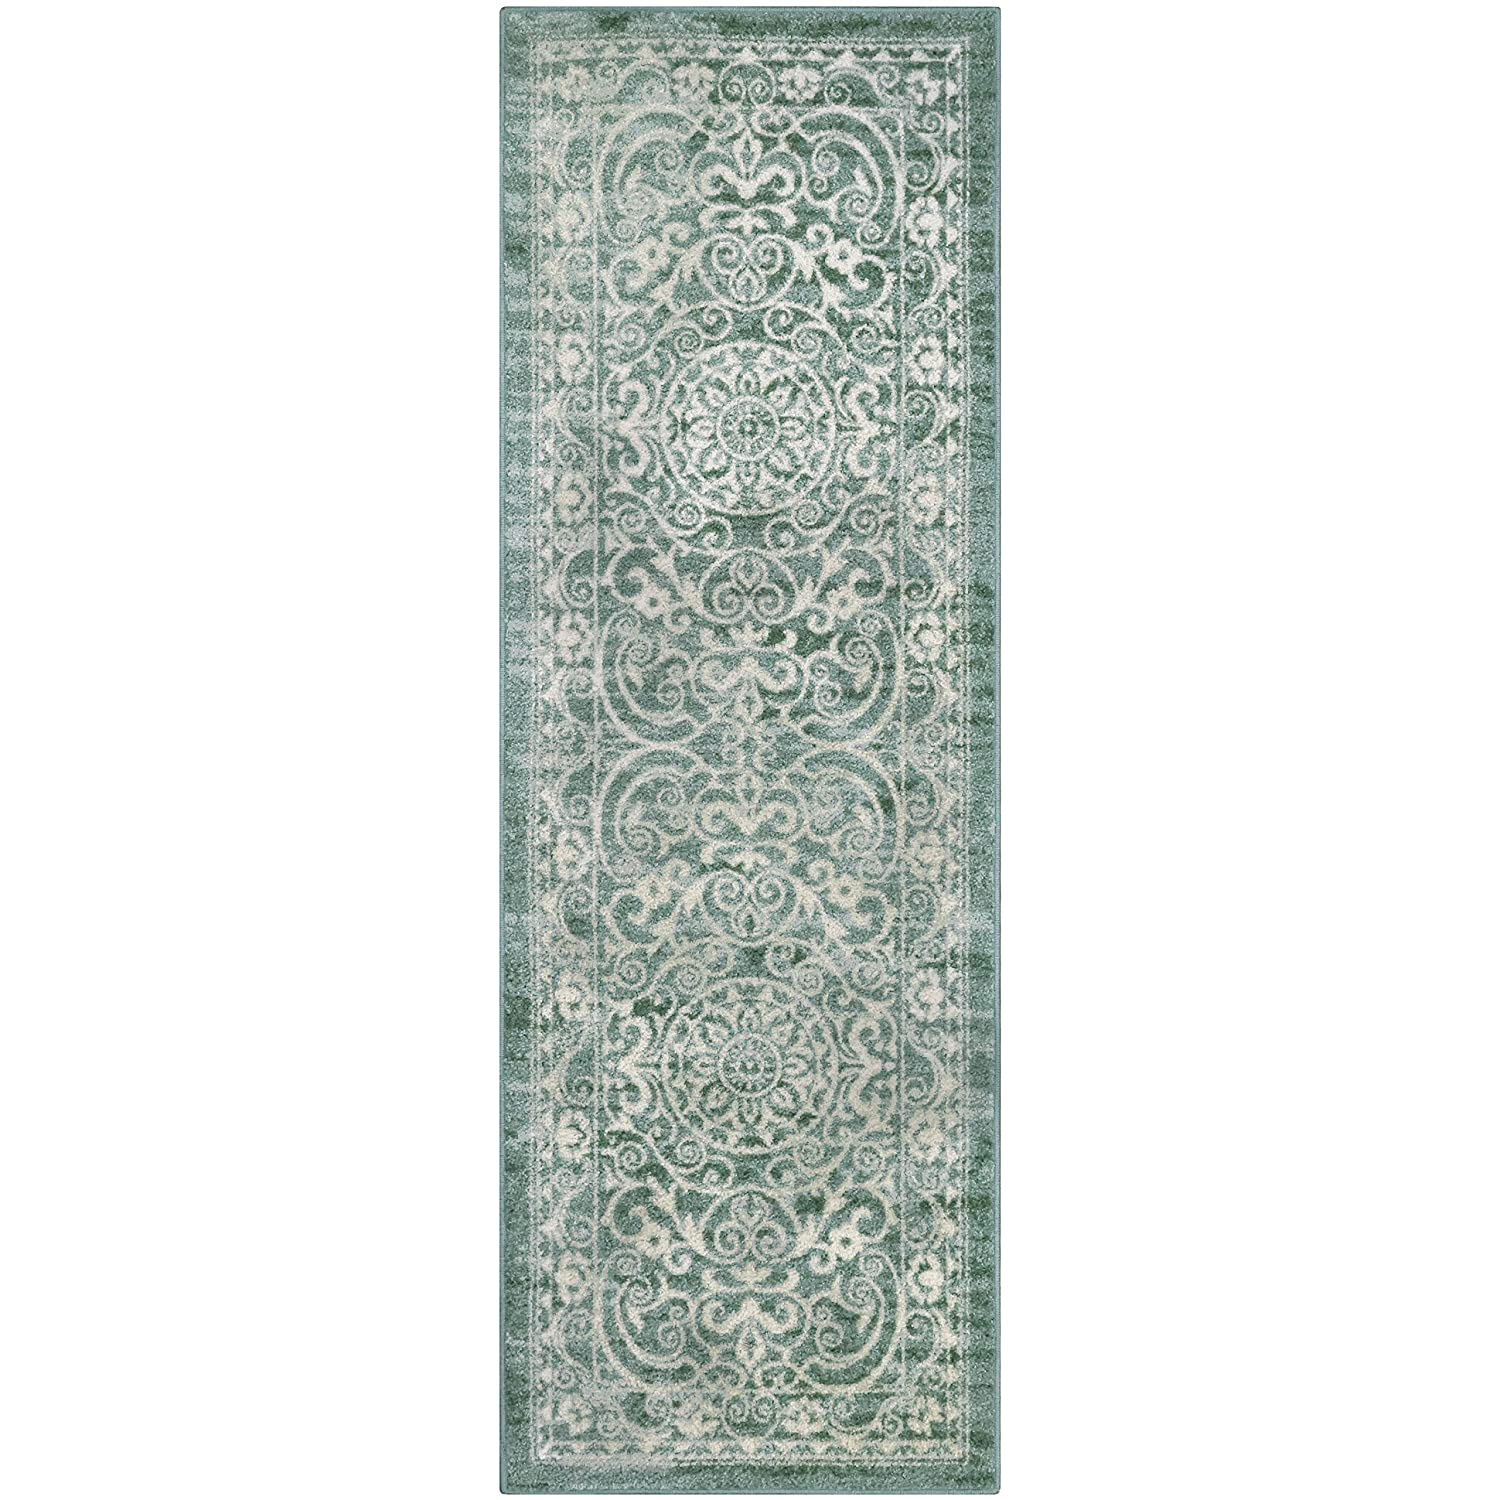 Maples Rugs Runner Rug - Pelham 24'x72' Non Skid Hallway Carpet Entry Rugs Runners [Made in USA] for Kitchen and Entryway, Grey/Blue AG4055702